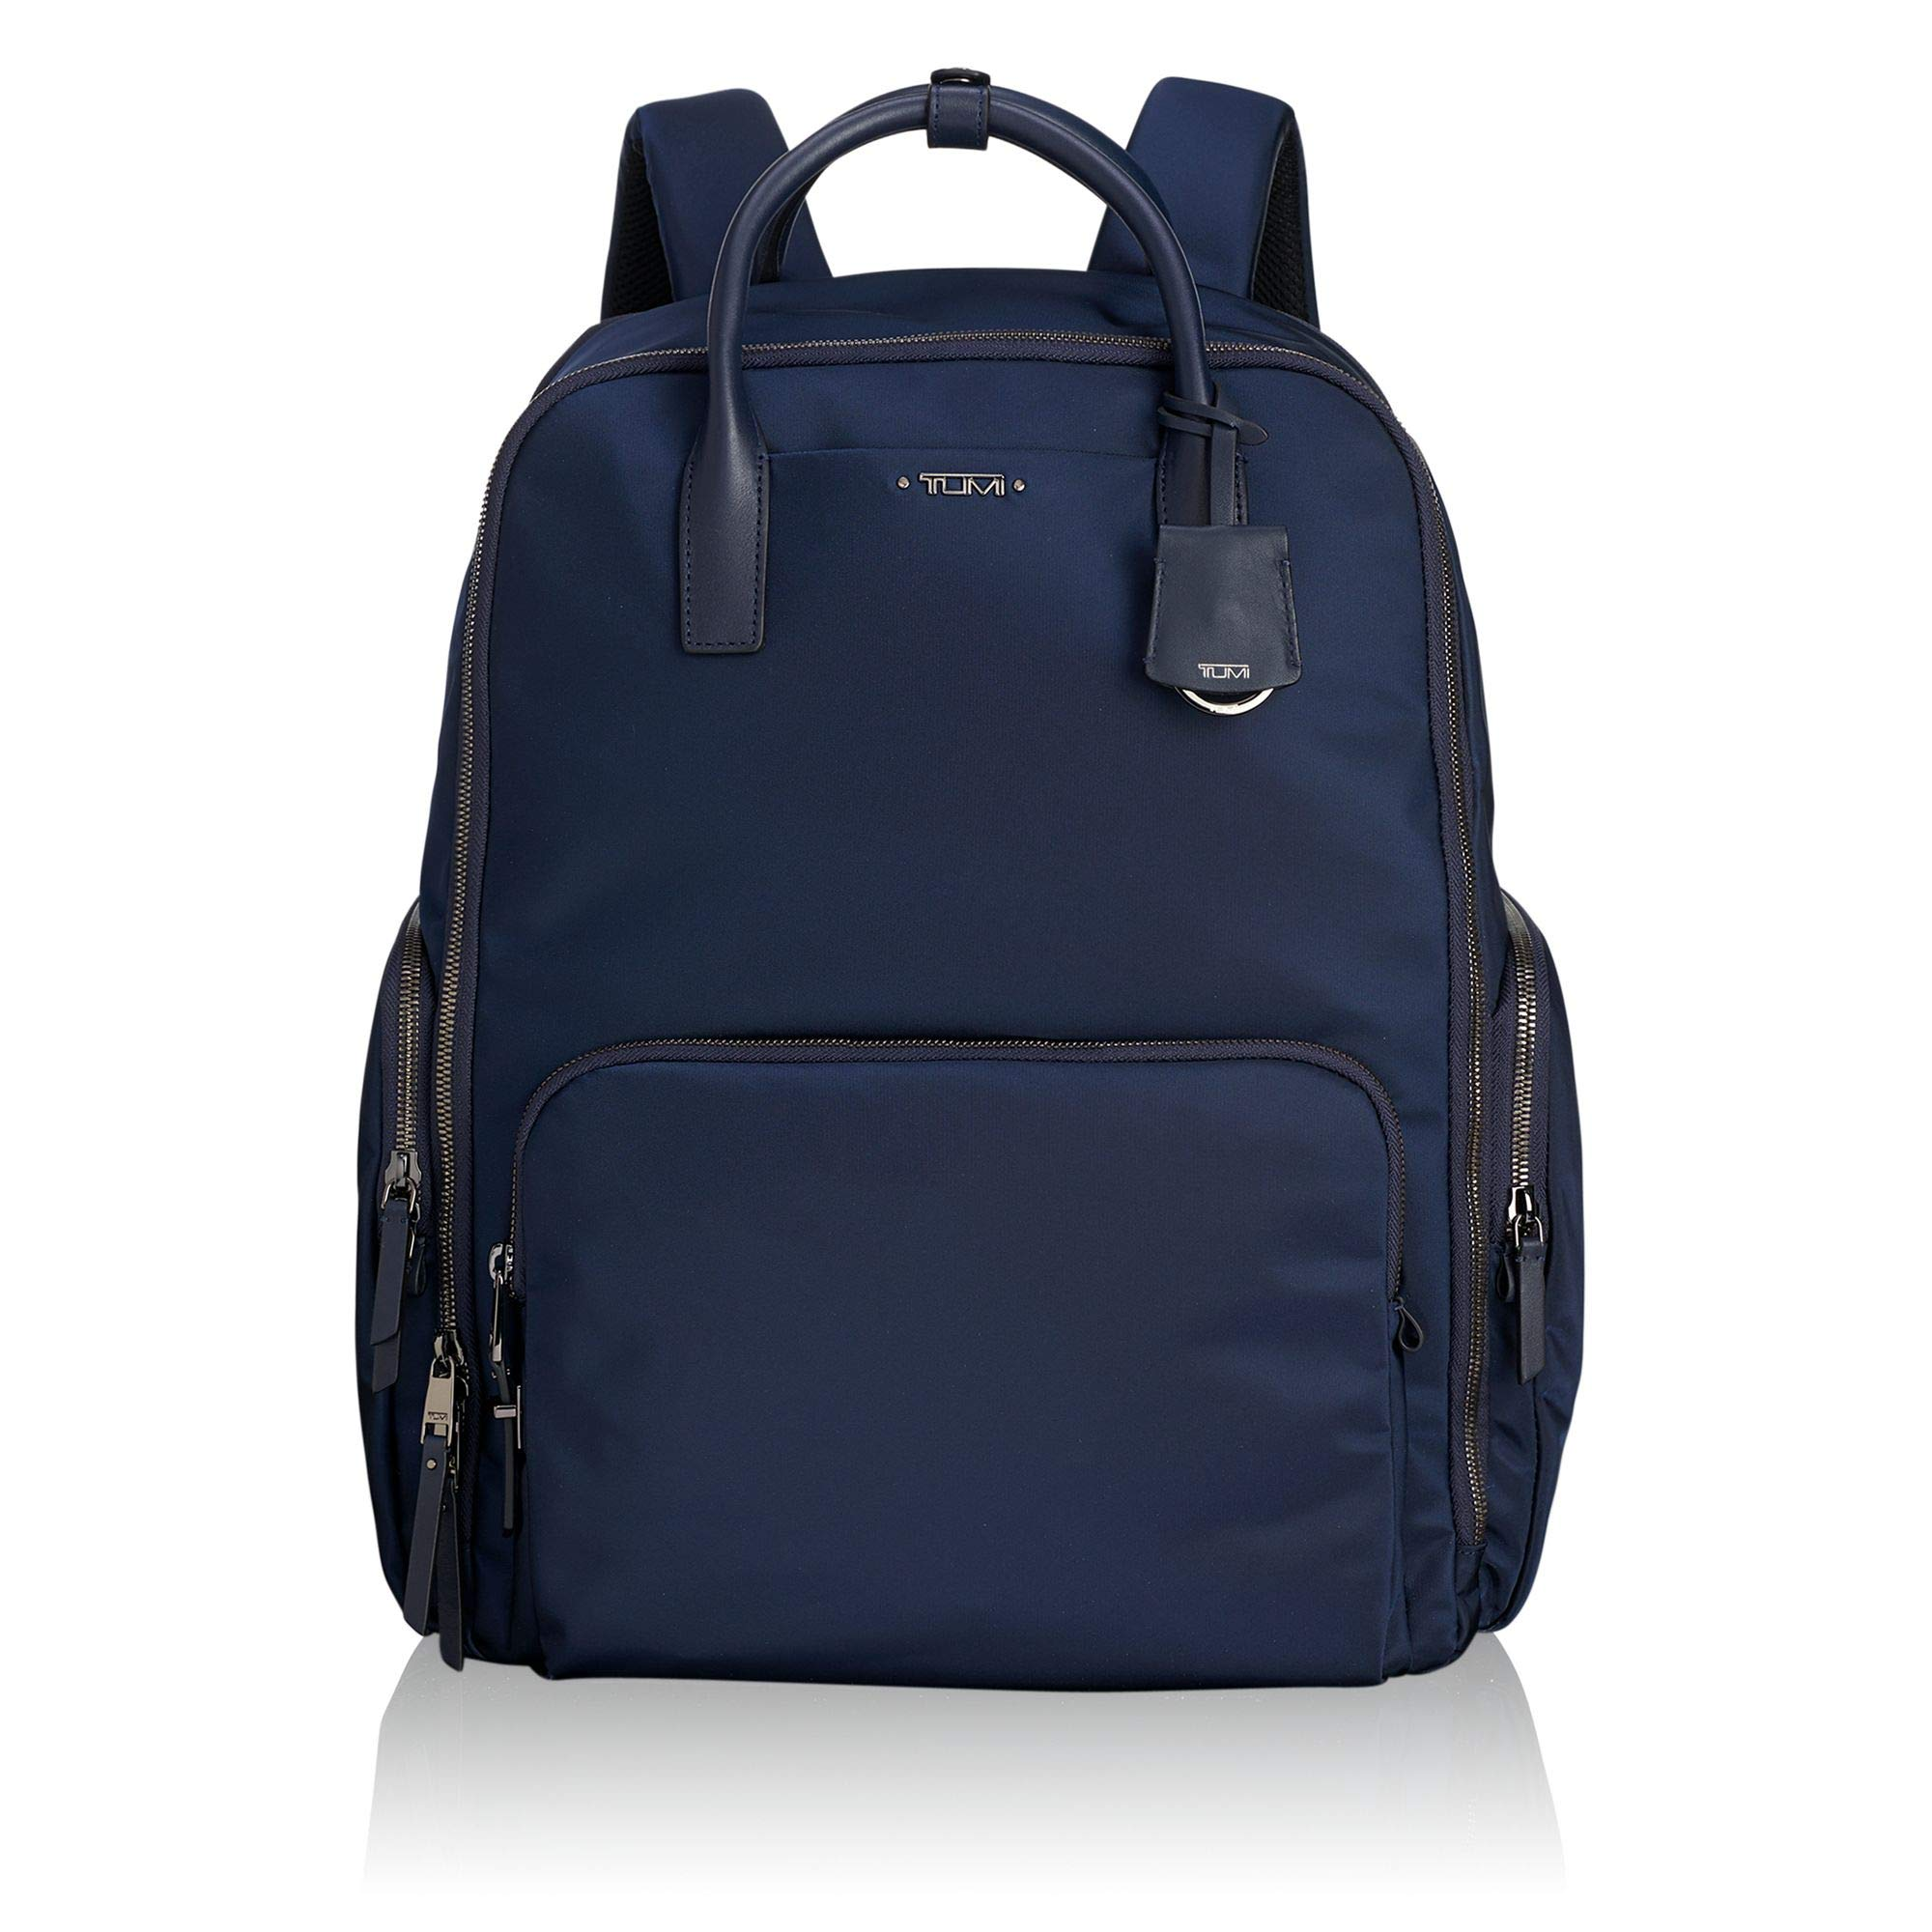 TUMI - Voyageur Ursula T-Pass Laptop Backpack - 15 Inch Computer Bag for Women